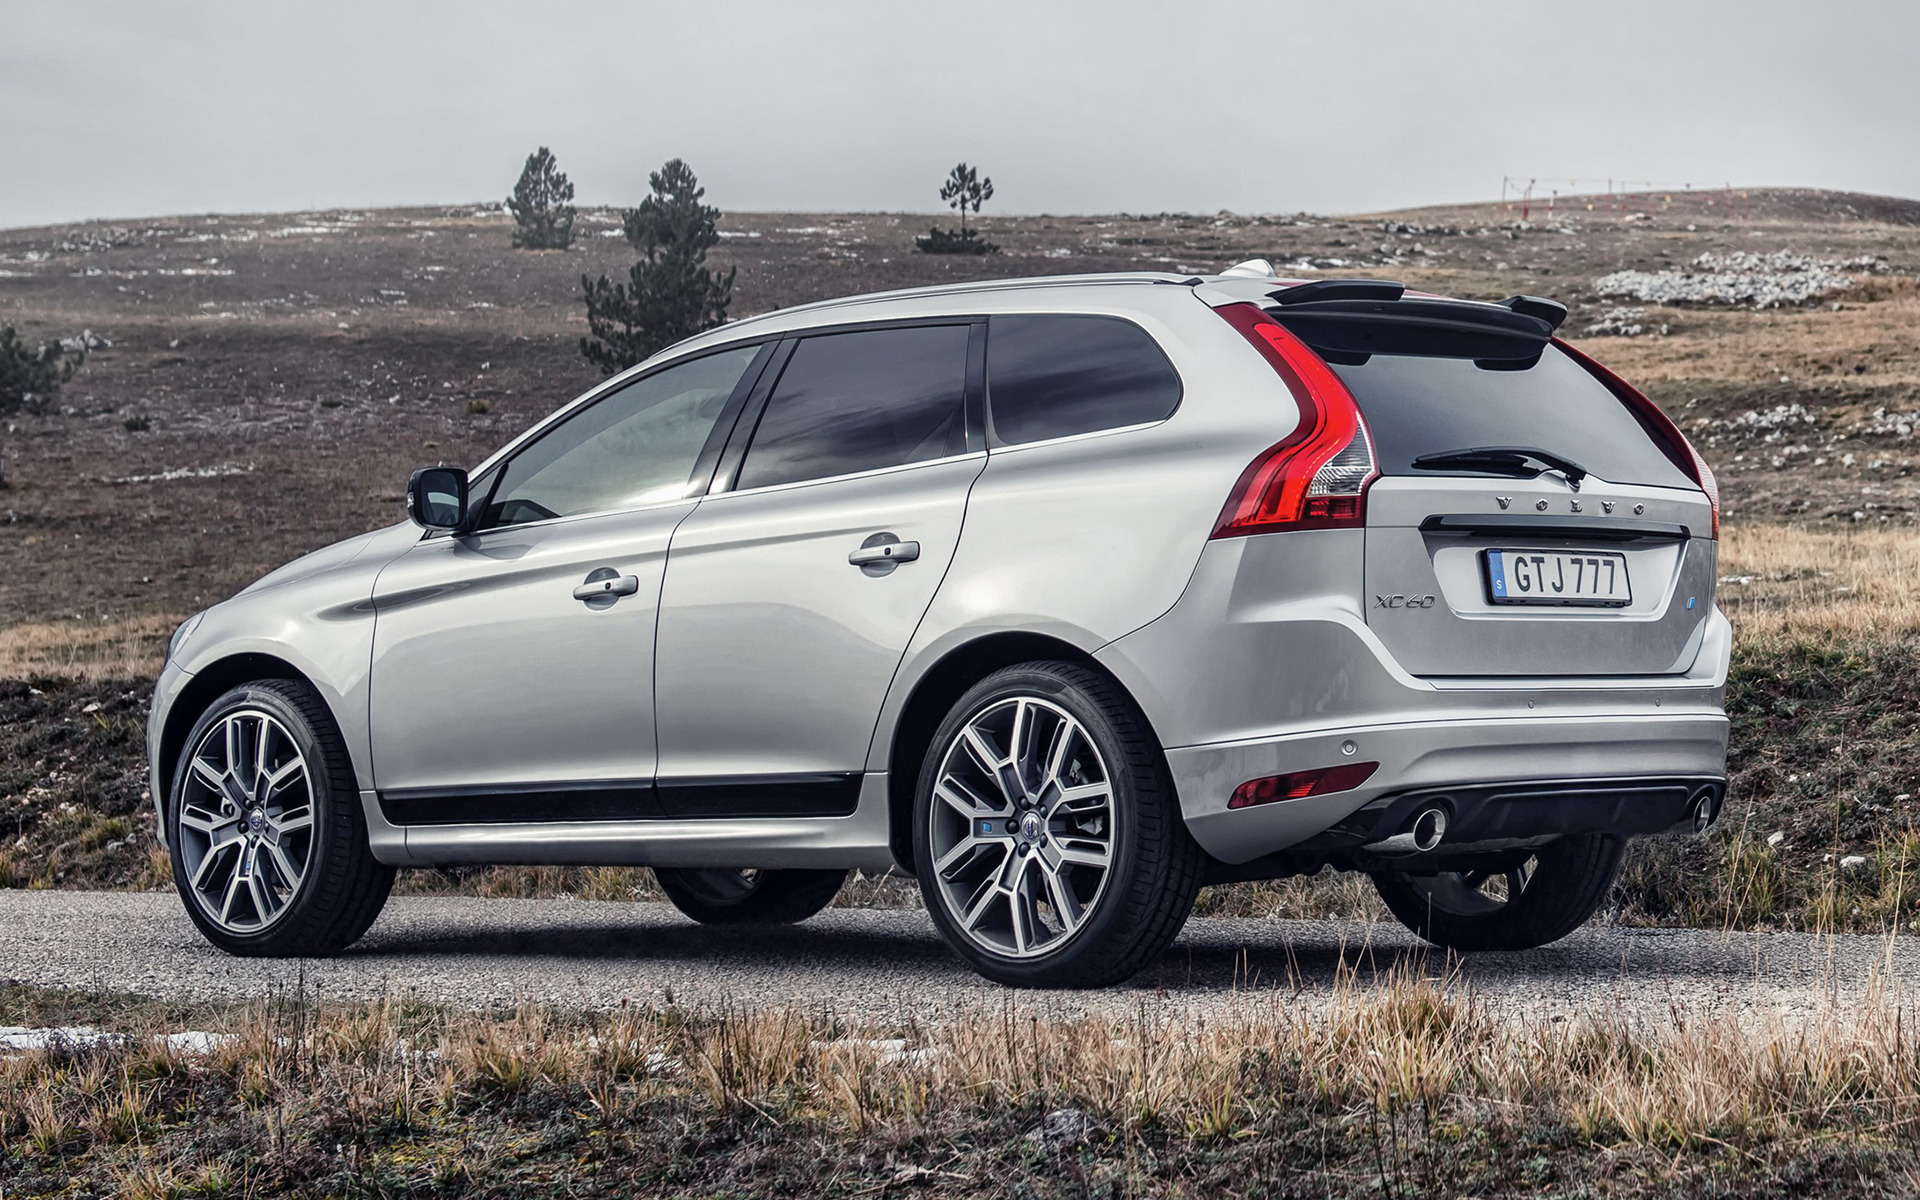 Volvo Xc60 Polestar Parts 2016 Wallpapers And Hd Images